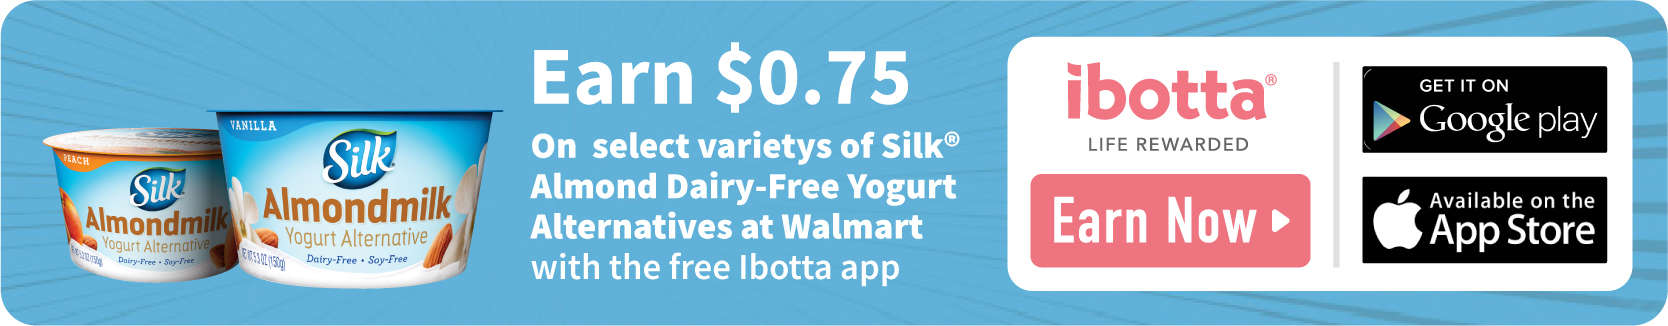 Ibotta Offer for Silk Almondmilk Yogurt Alternative